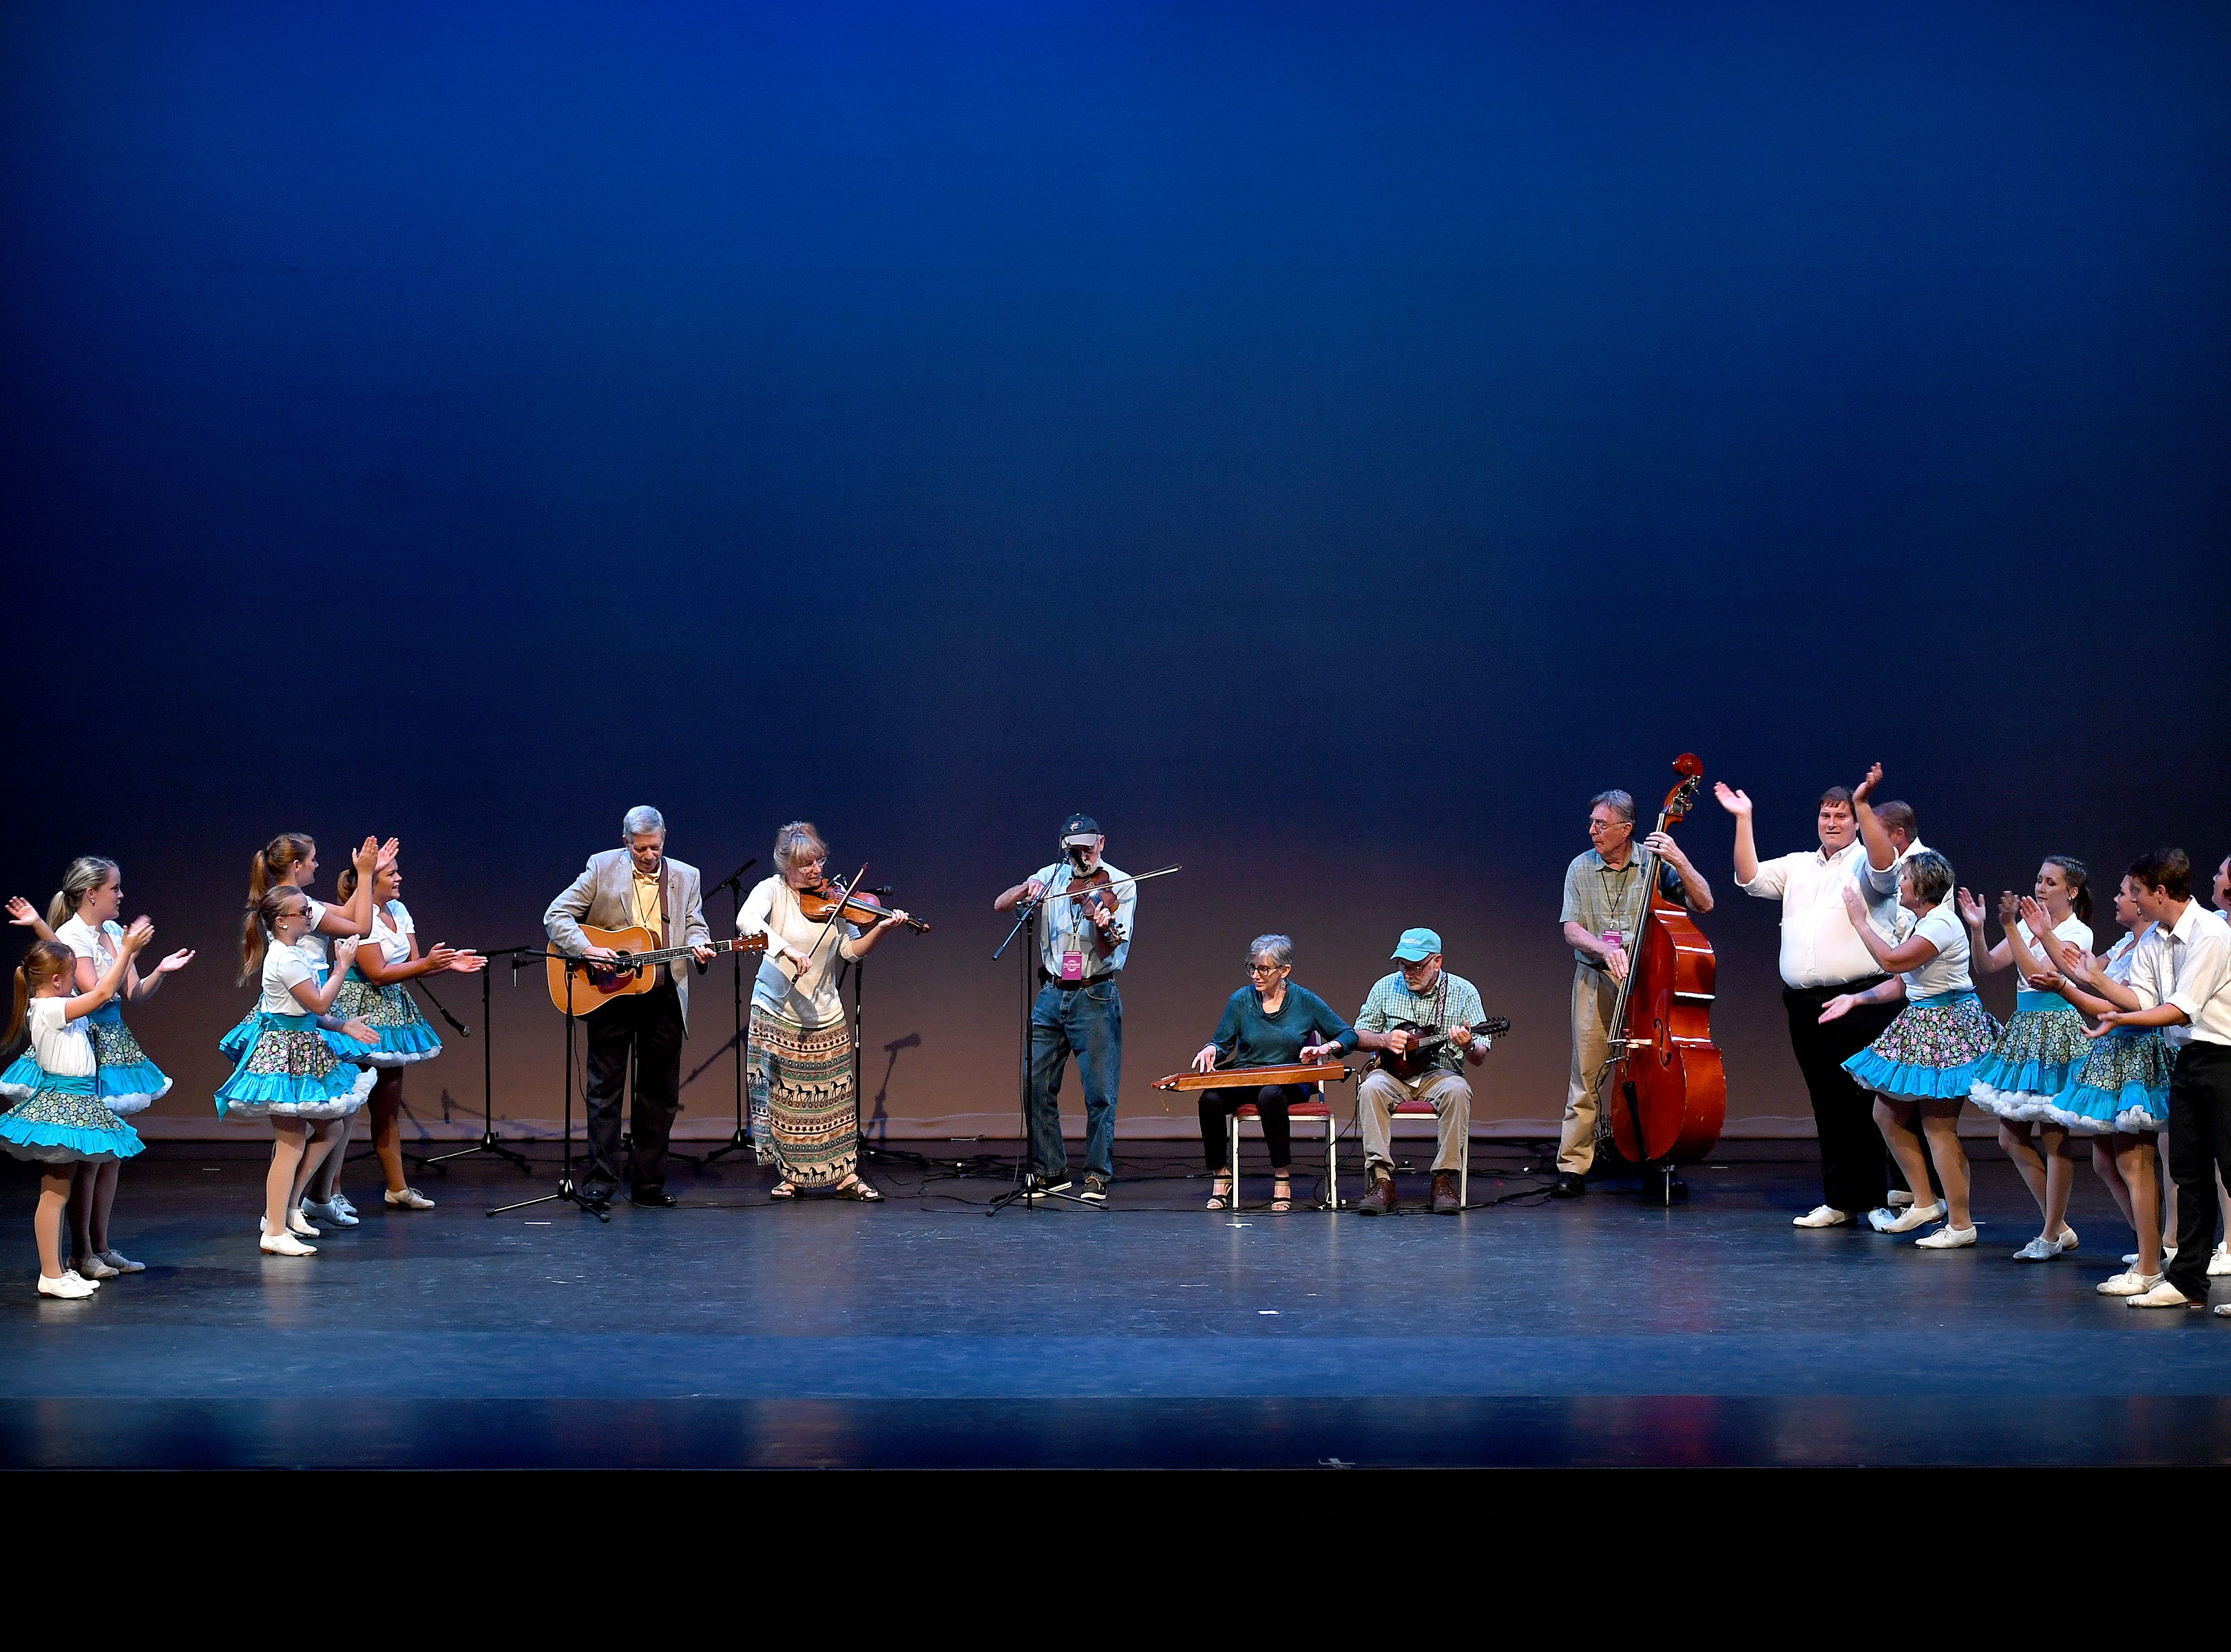 Members of the Hot Foot Cloggers, of Six Mile, South Carolina, give recognition to the Folkmoot band Blackberry Jam who provided music for their performance during a Folkmoot Festival show at the Diana Wortham Theatre on Friday, Aug. 27, 2018.